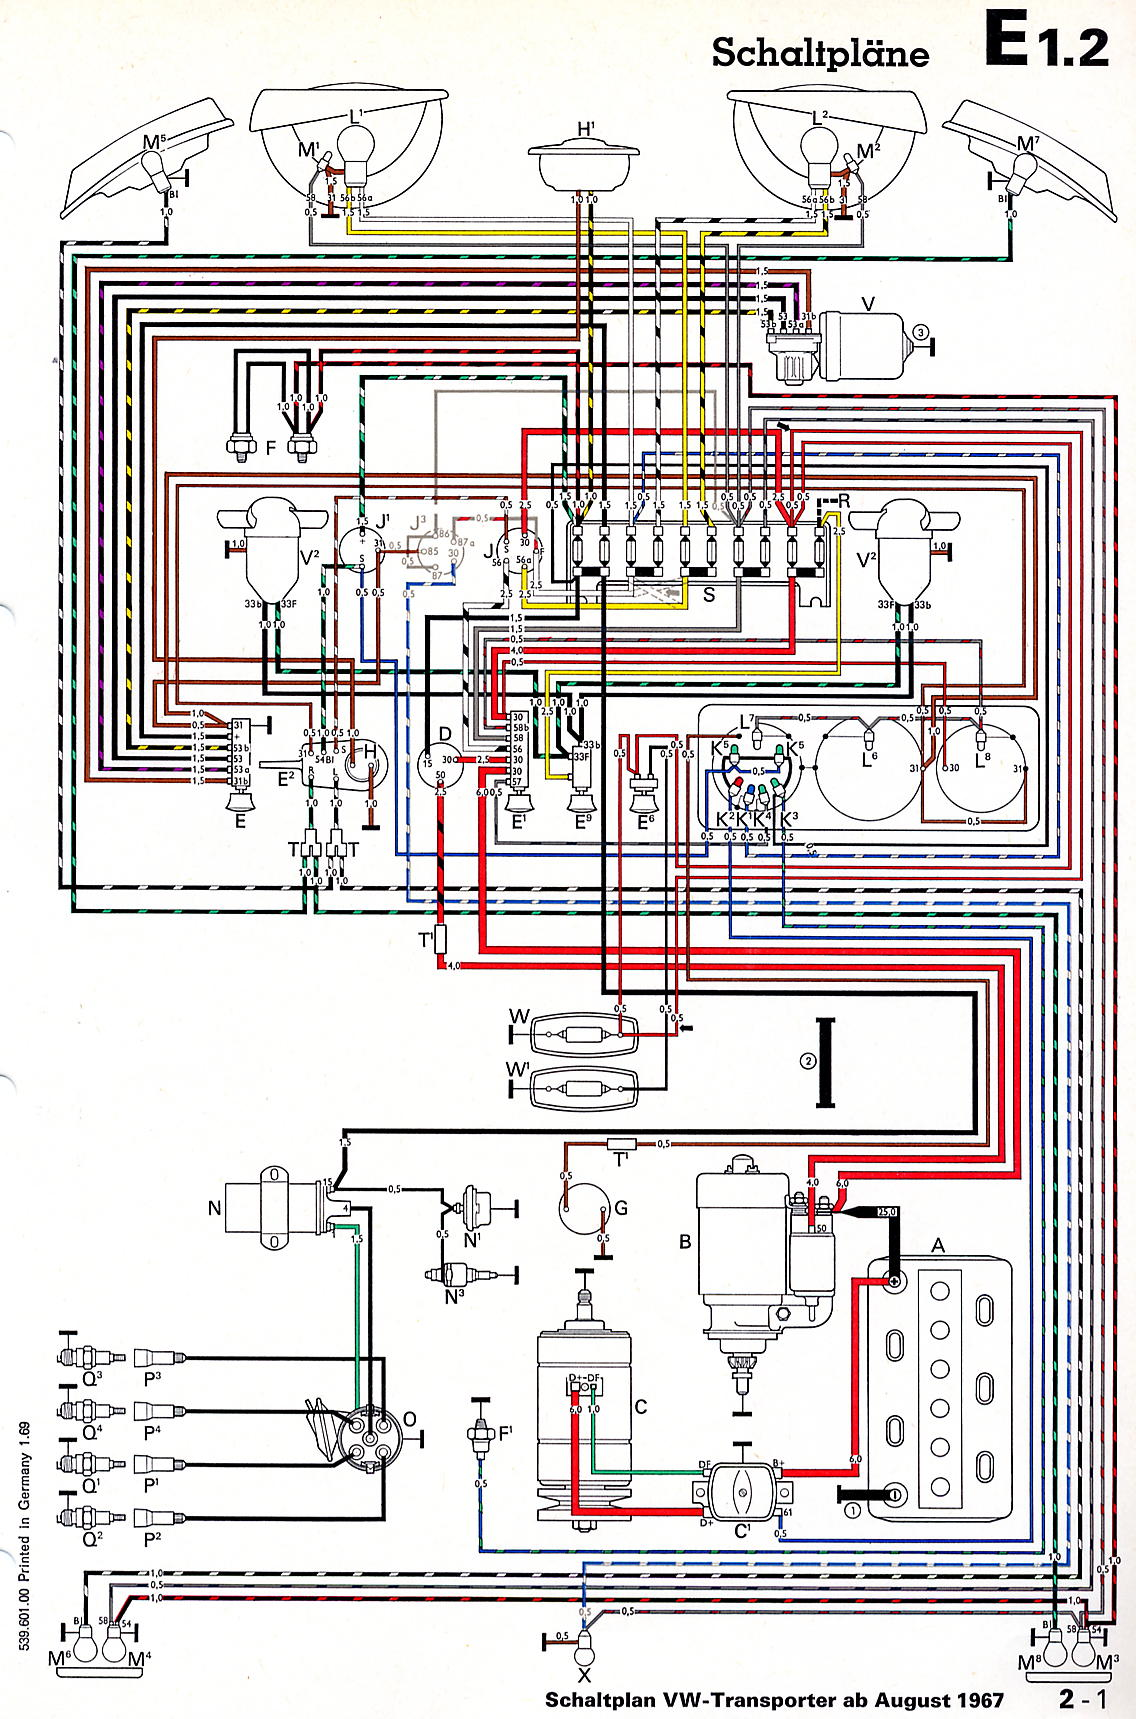 Truck Additionally Vw Beetle Horn Wiring On 1960 Vw Wiring Diagram on engine schematics, plumbing schematics, transmission schematics, transformer schematics, amplifier schematics, wire schematics, ford diagrams schematics, circuit schematics, electronics schematics, ignition schematics, generator schematics, piping schematics, ecu schematics, ductwork schematics, motor schematics, computer schematics, electrical schematics, tube amp schematics, engineering schematics, design schematics,